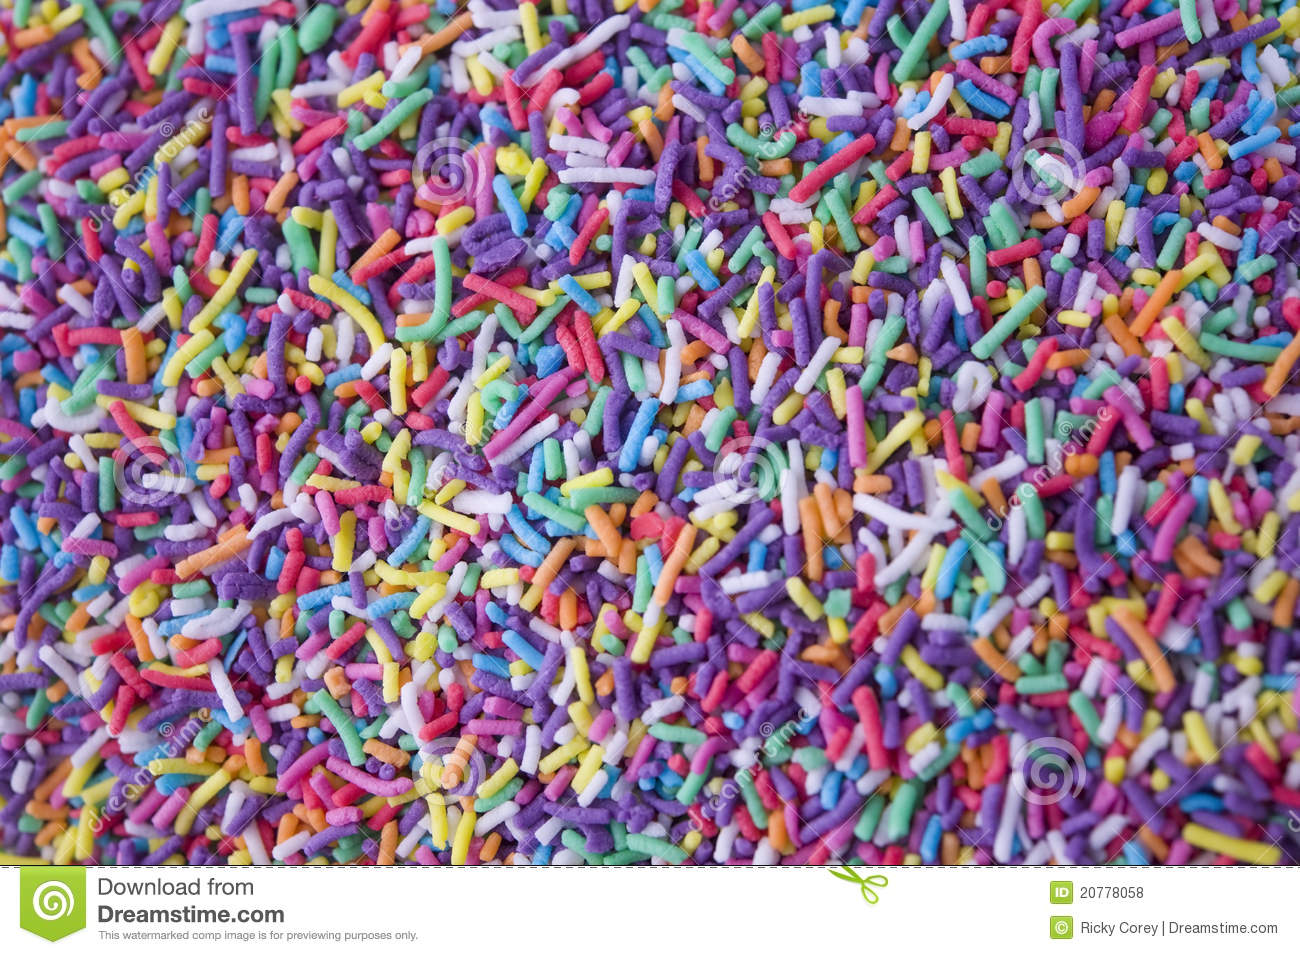 Free Animated Fall Wallpaper Rainbow Sprinkles Stock Photo Image Of Decoration